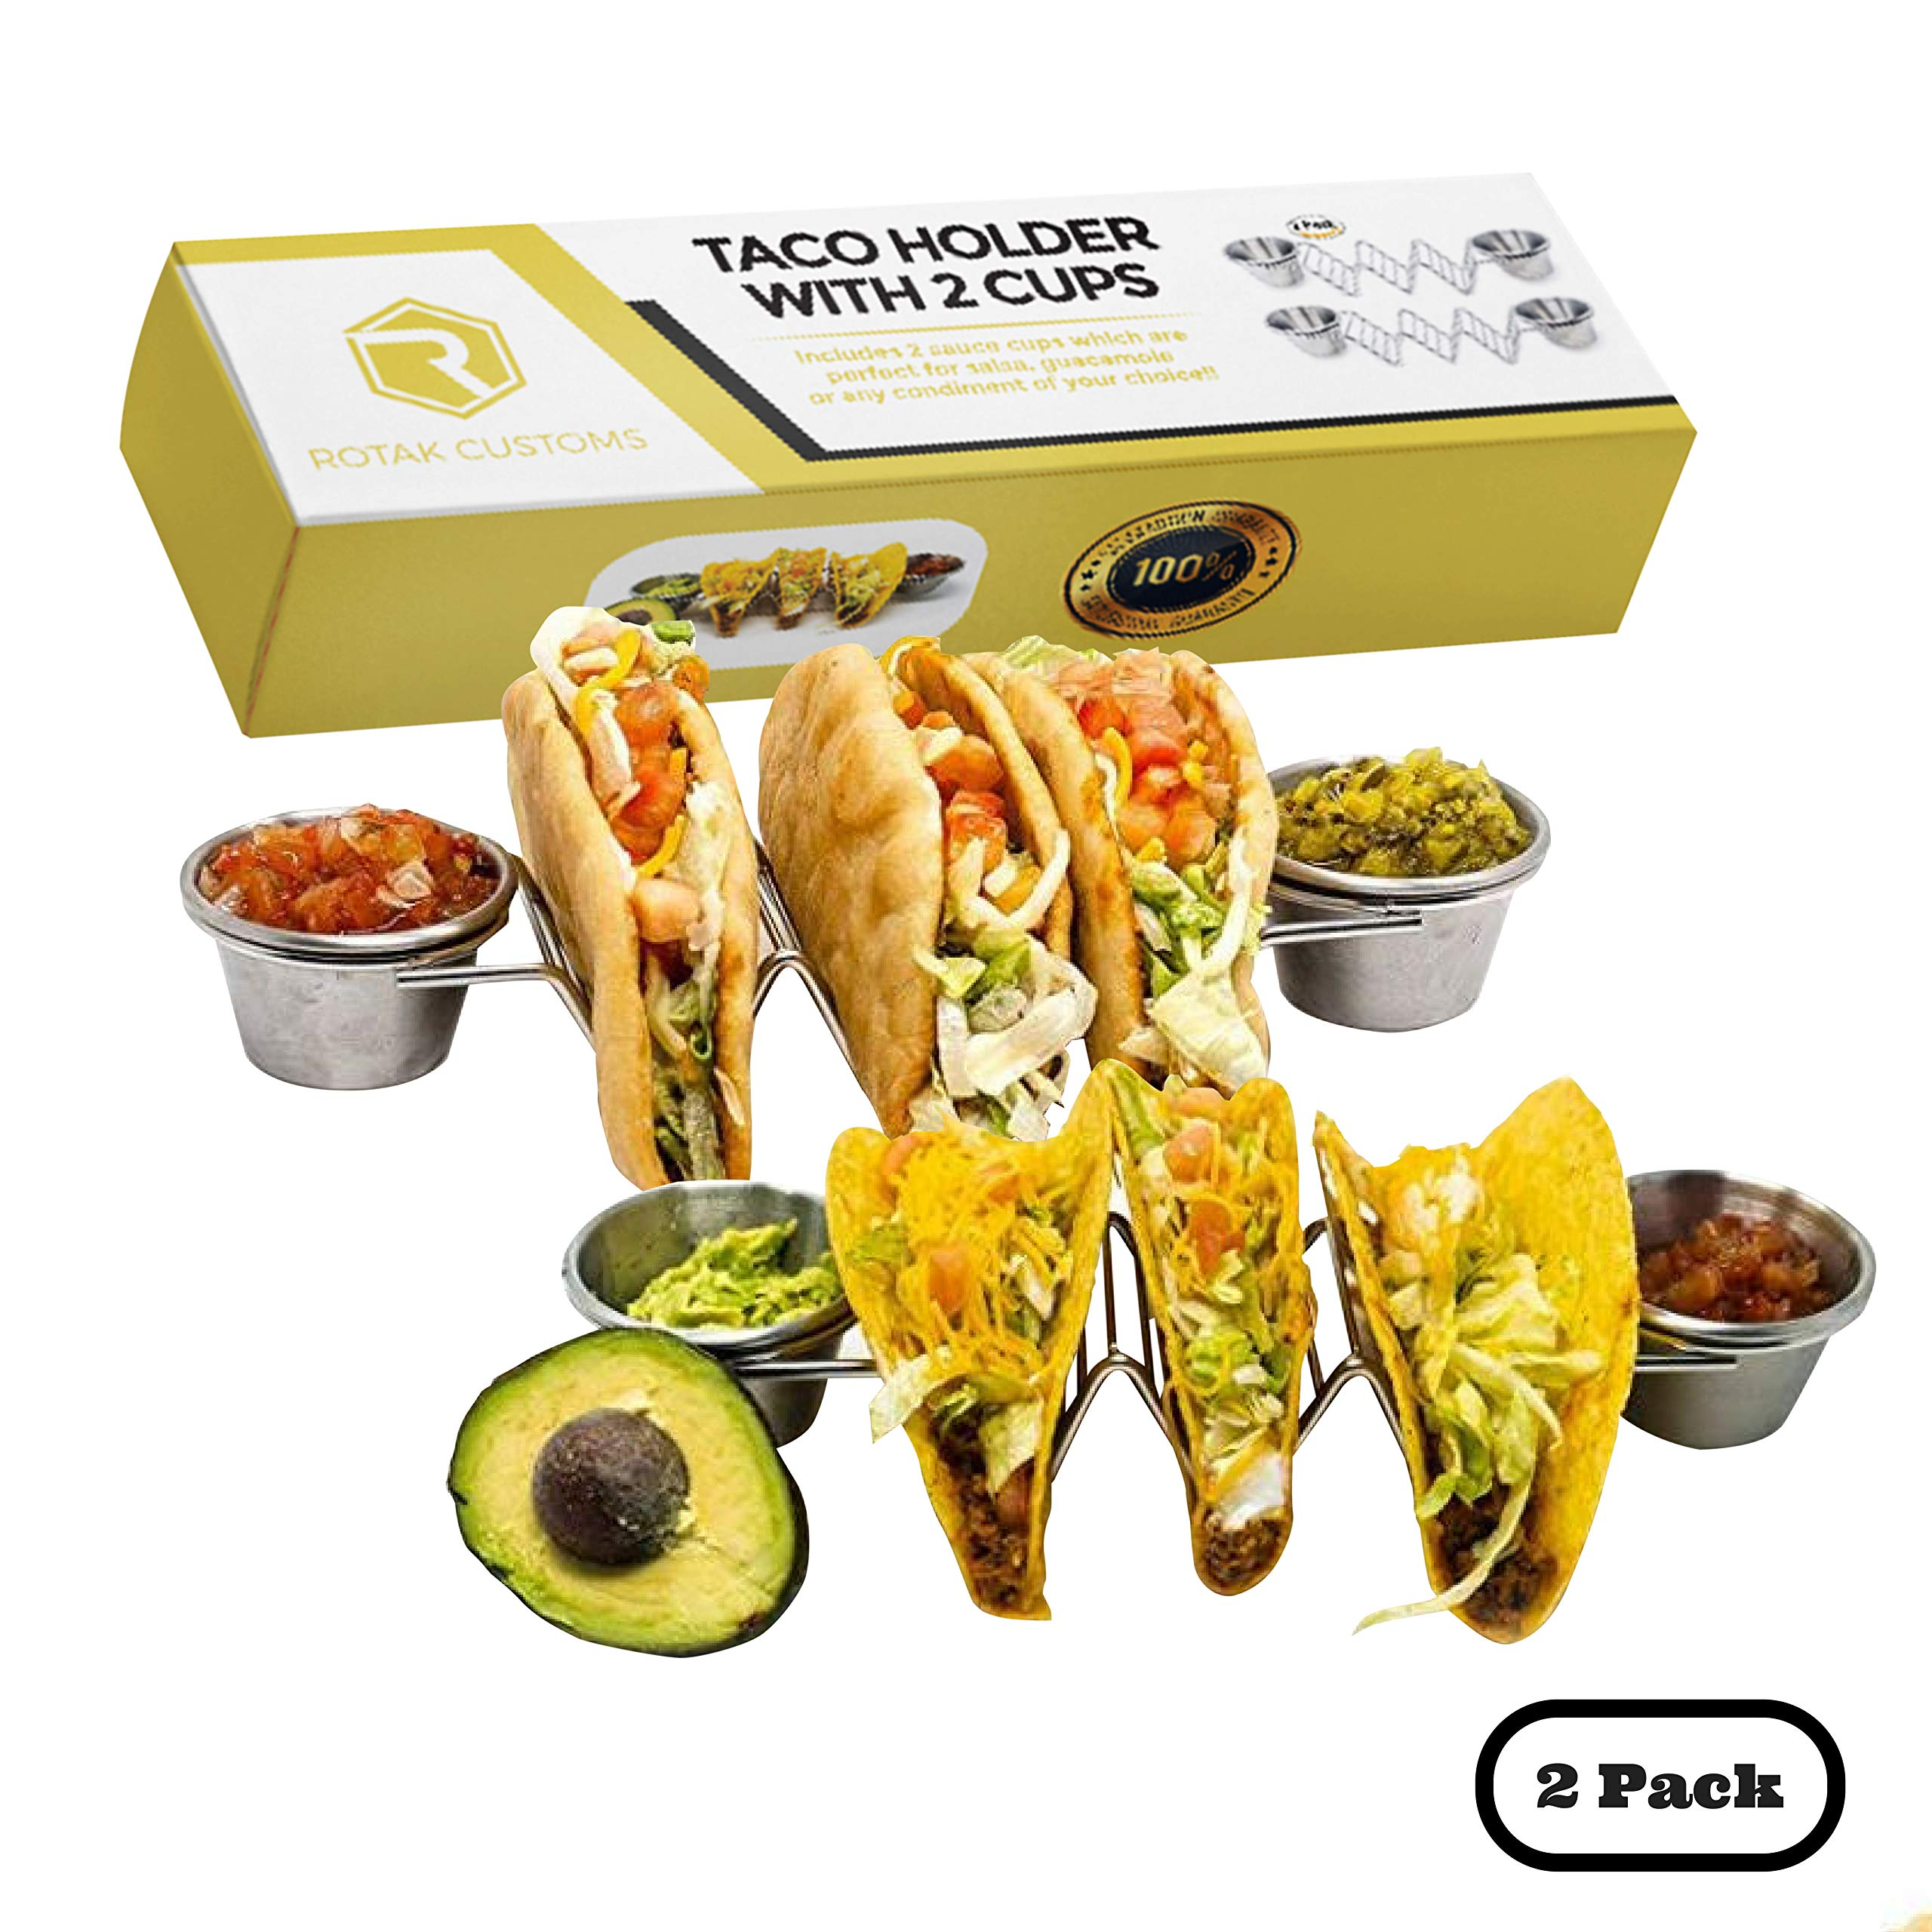 Taco Holder Stand With Cups- Premium 2 Pack Taco Stand With 2 Sauce Cups-Stainless Steel Dual Cup Taco Holders And Rack Holds Up To 3 Tacos Each- Perfect As Hot dog Holder Oven Safe